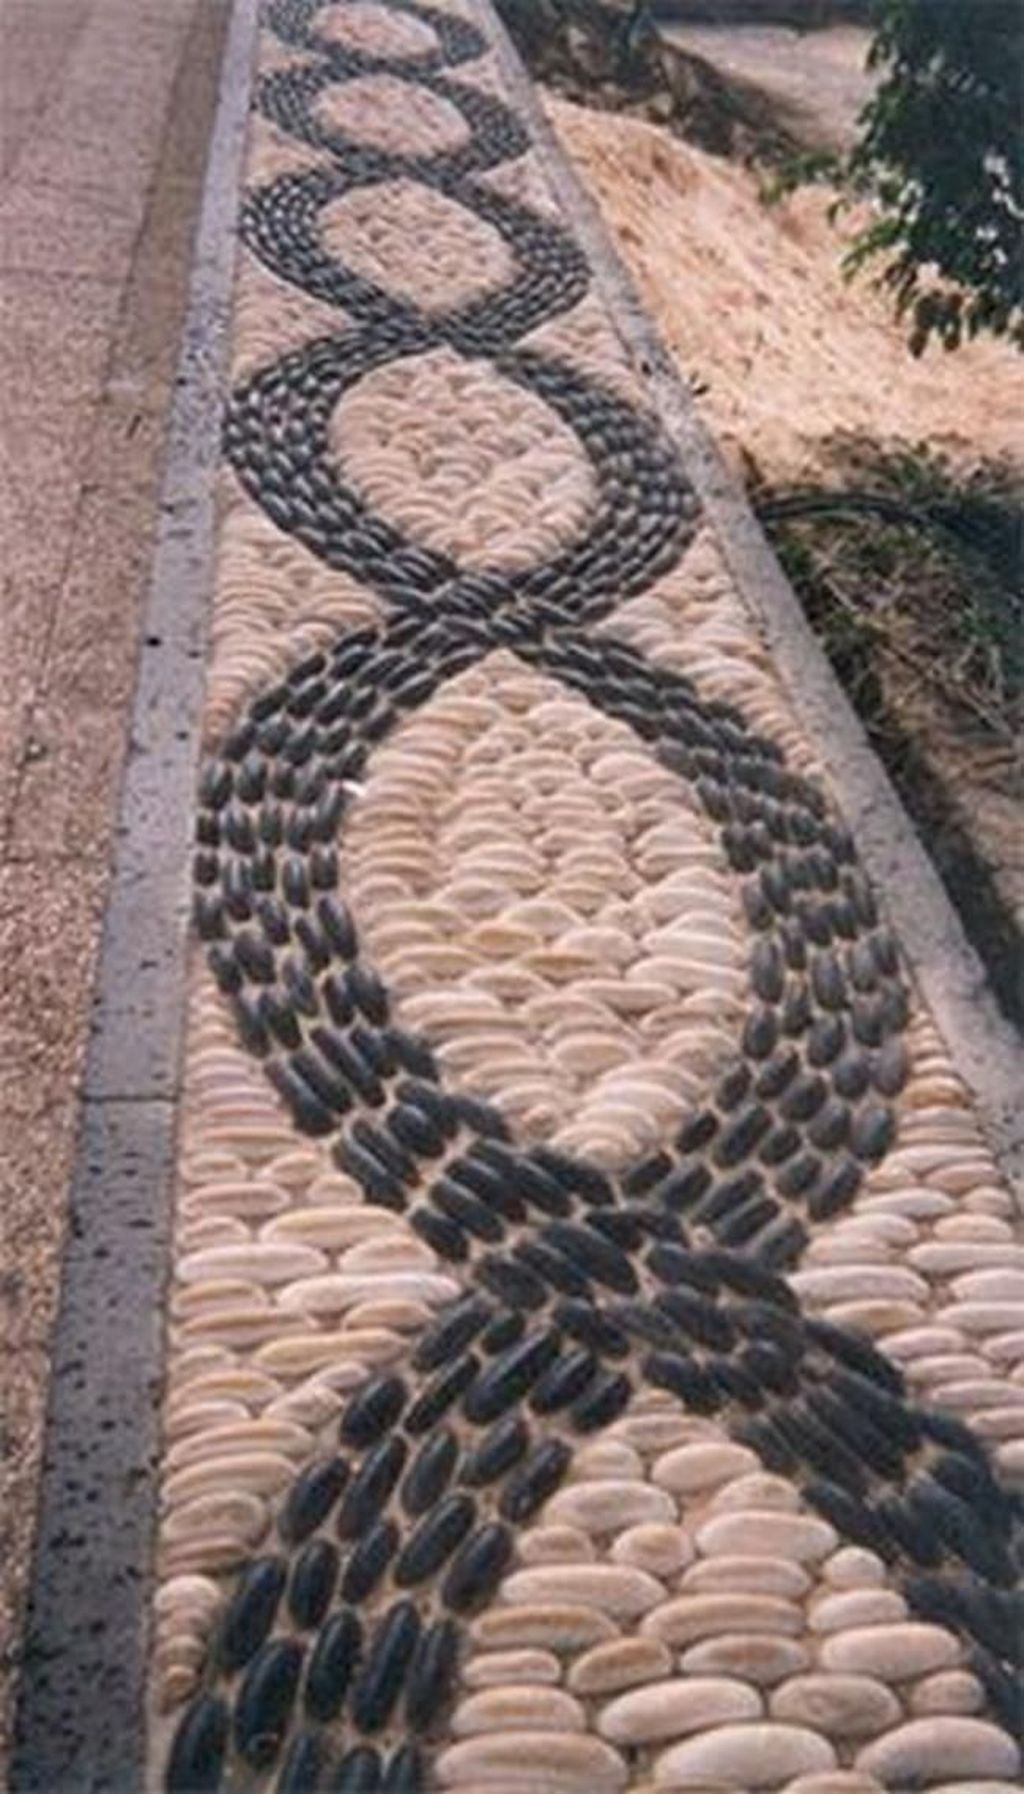 Stylish Stepping Stone Pathway Décor Ideas 48